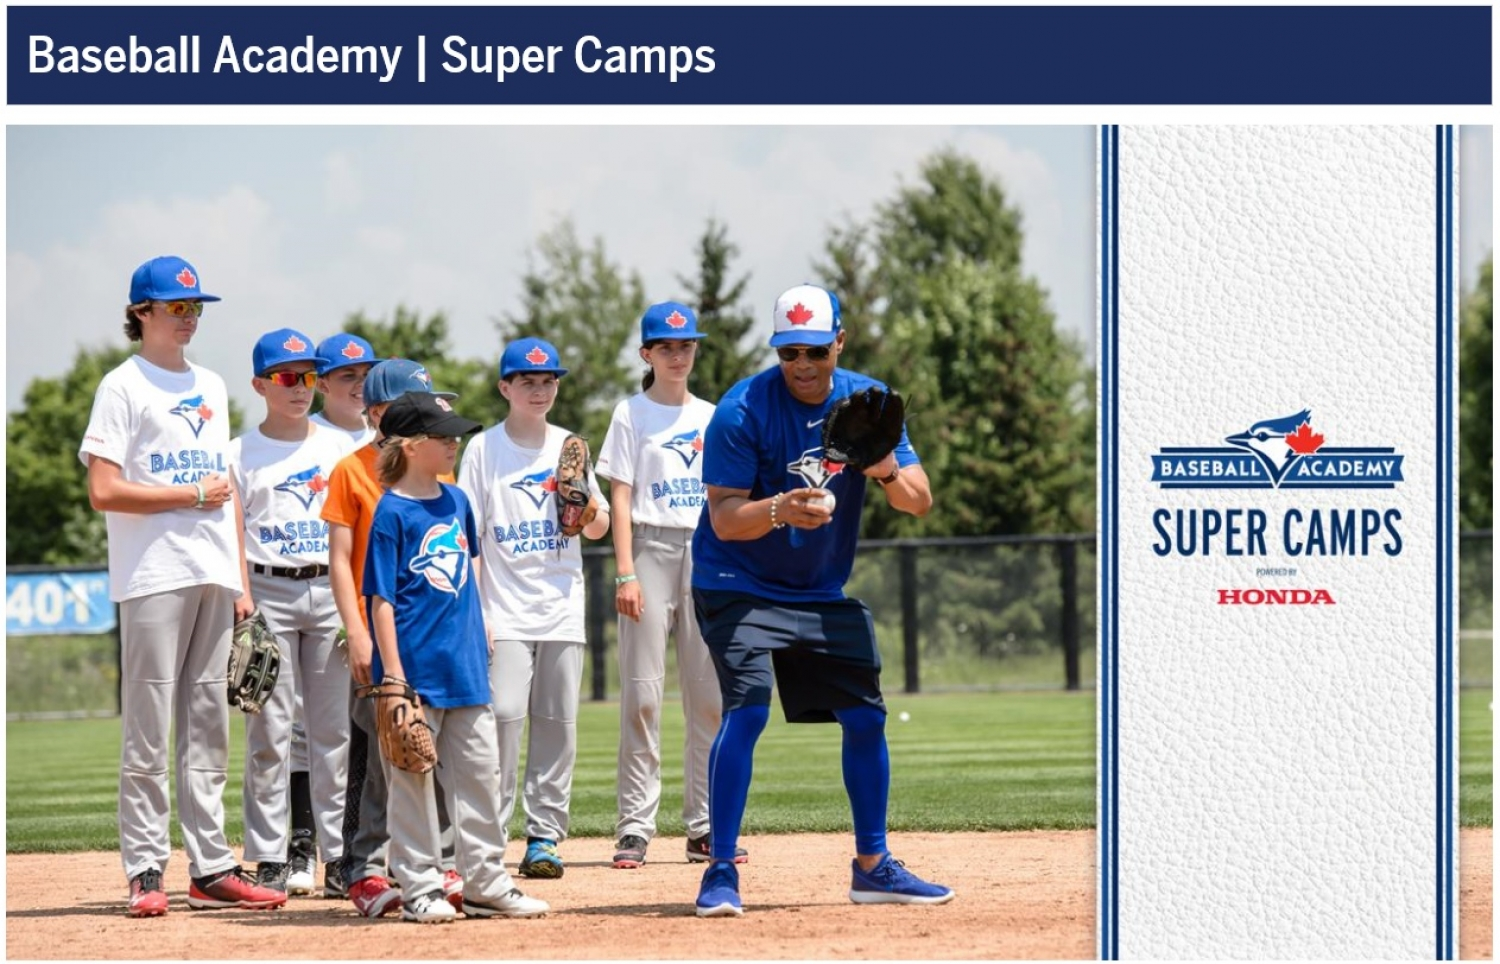 Blue Jays Super Camp Coming to Regina Optimist Baseball Park July 8 -9, 2019 !!!